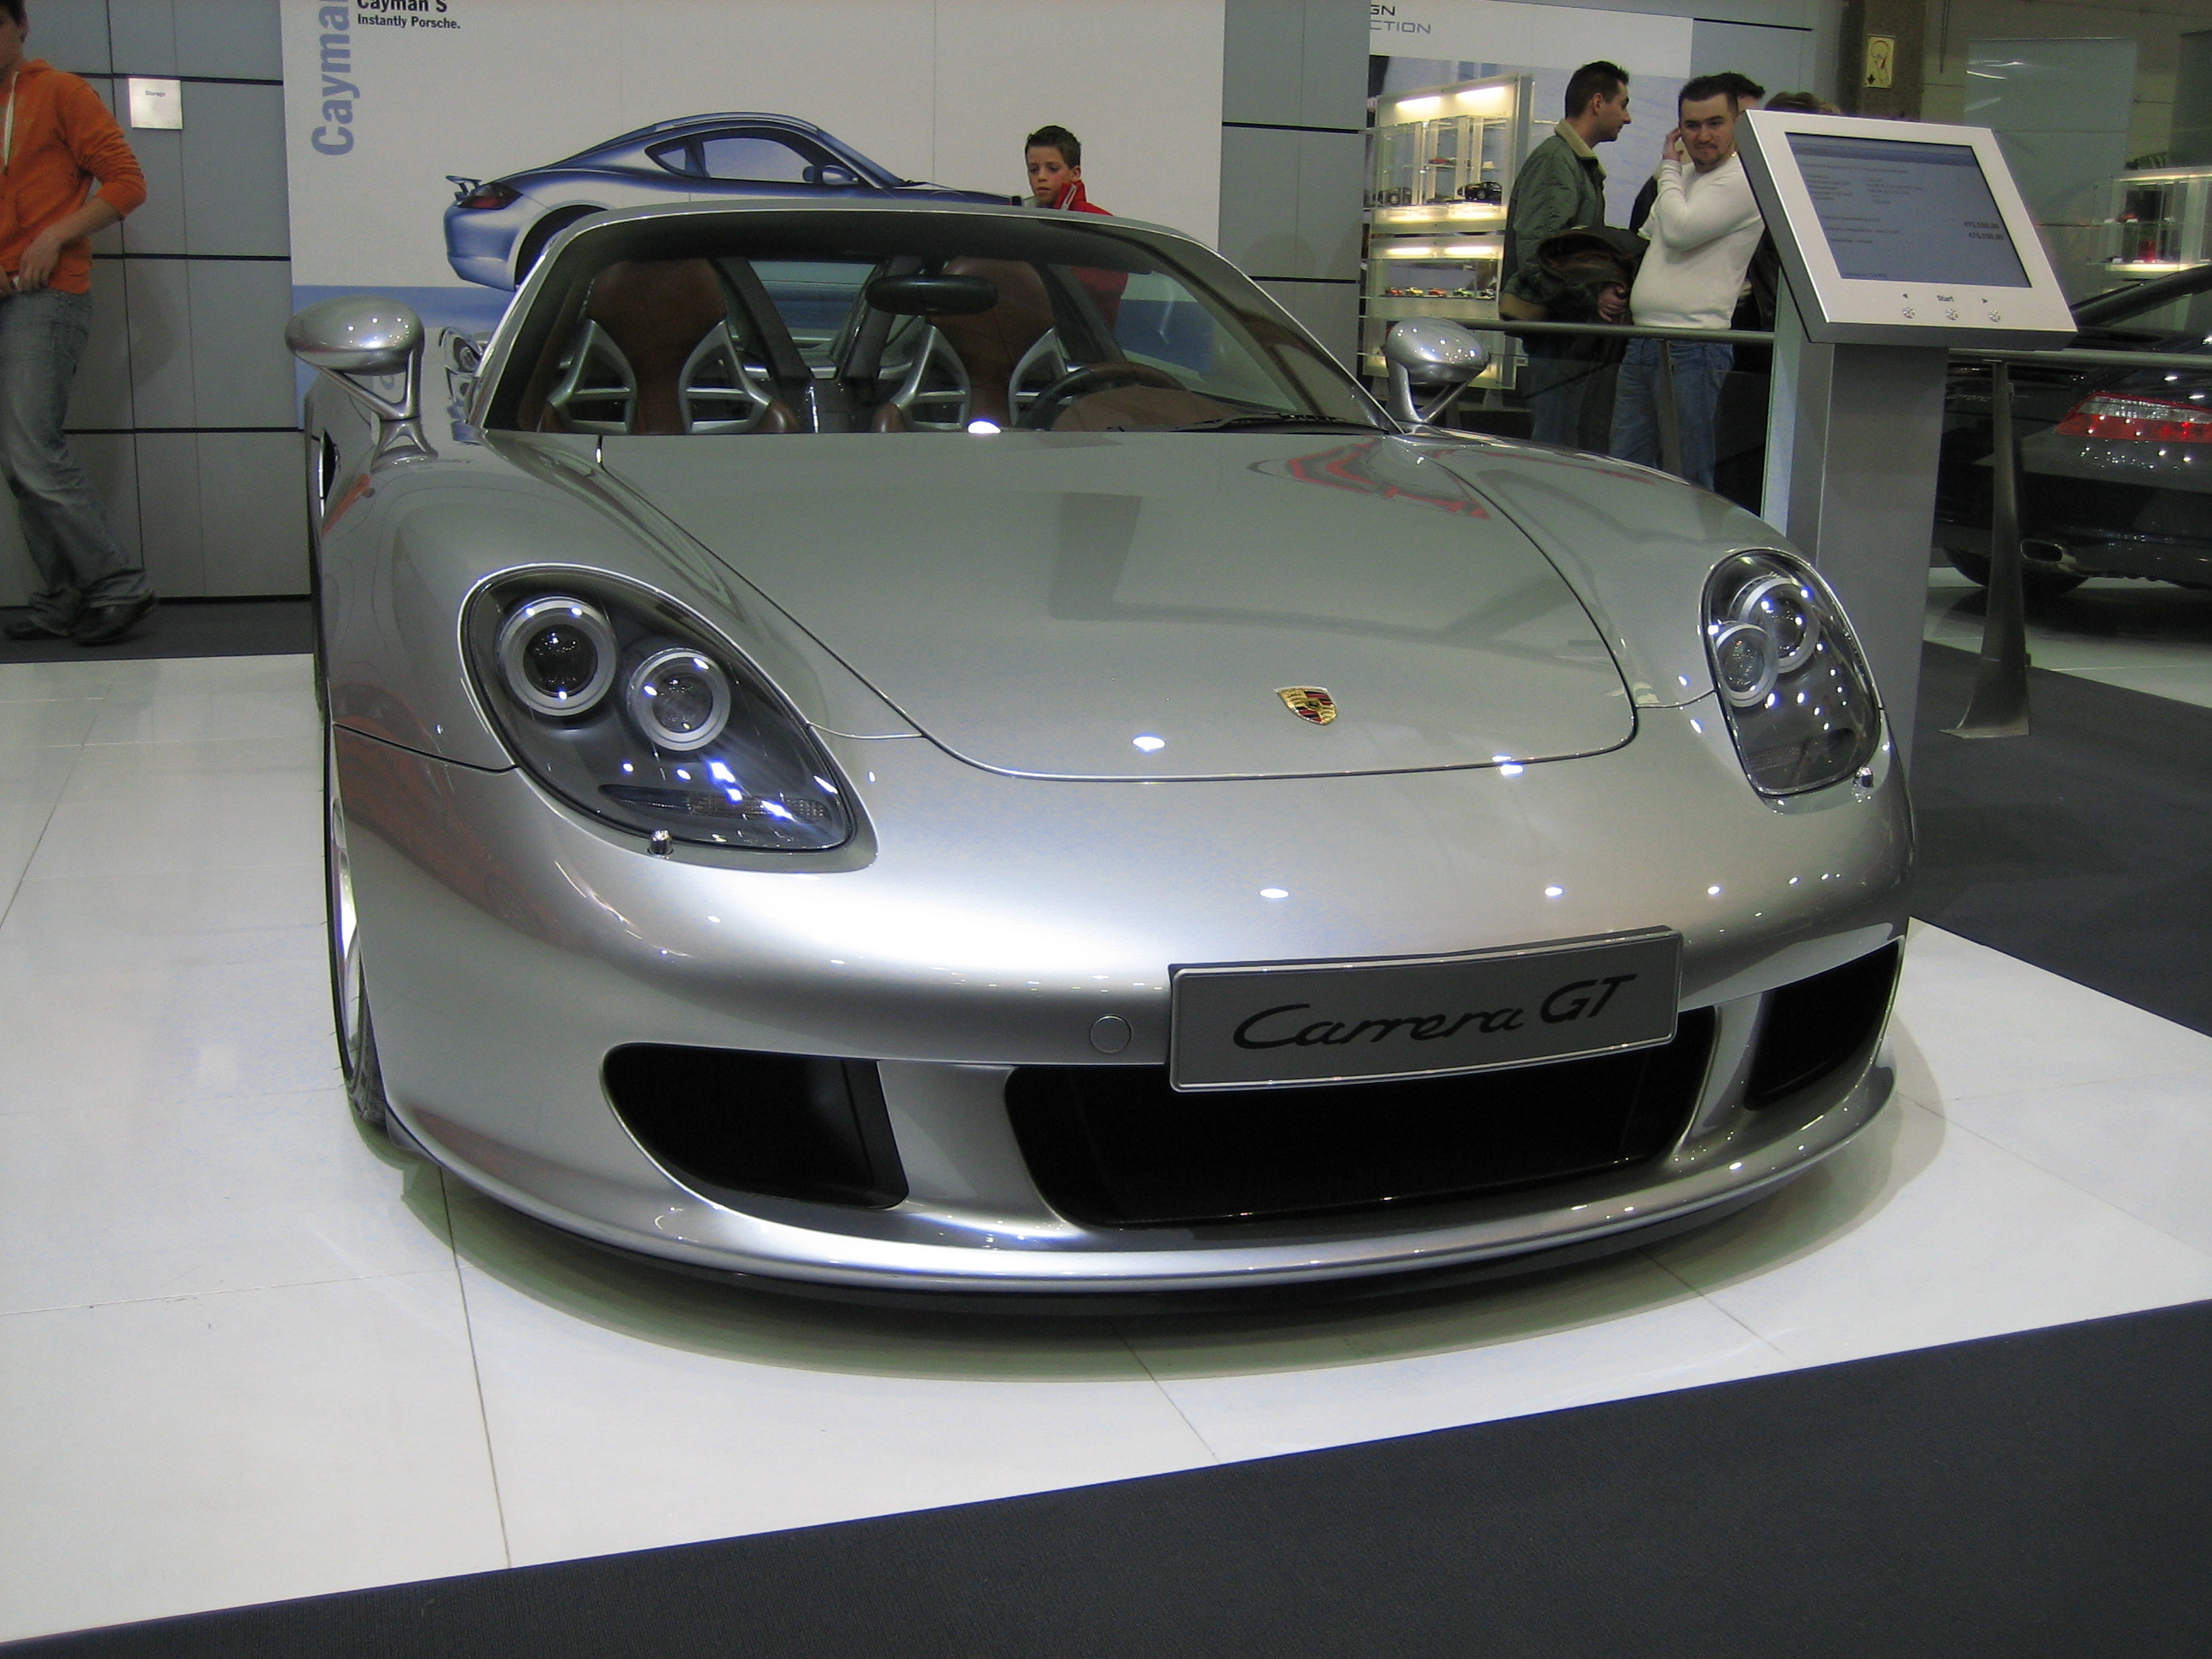 file porsche carrera gt wikipedia. Black Bedroom Furniture Sets. Home Design Ideas